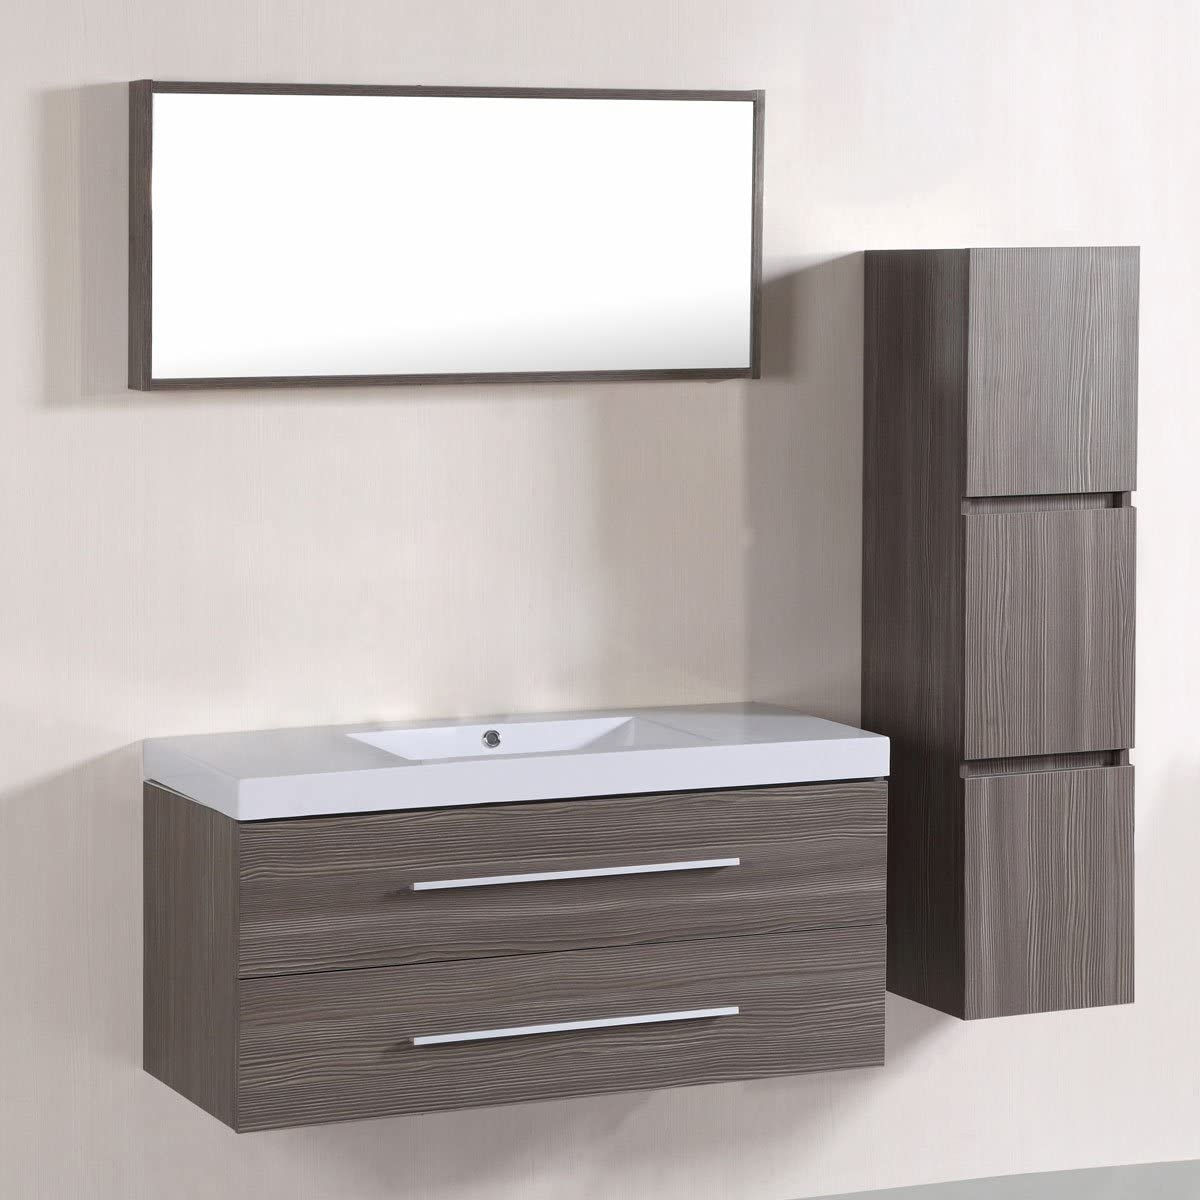 Amazon Com Bhbl 40 In Wall Mount Bathroom Vanity Set With Single Sink And Mirror C T5167a Kitchen Dining